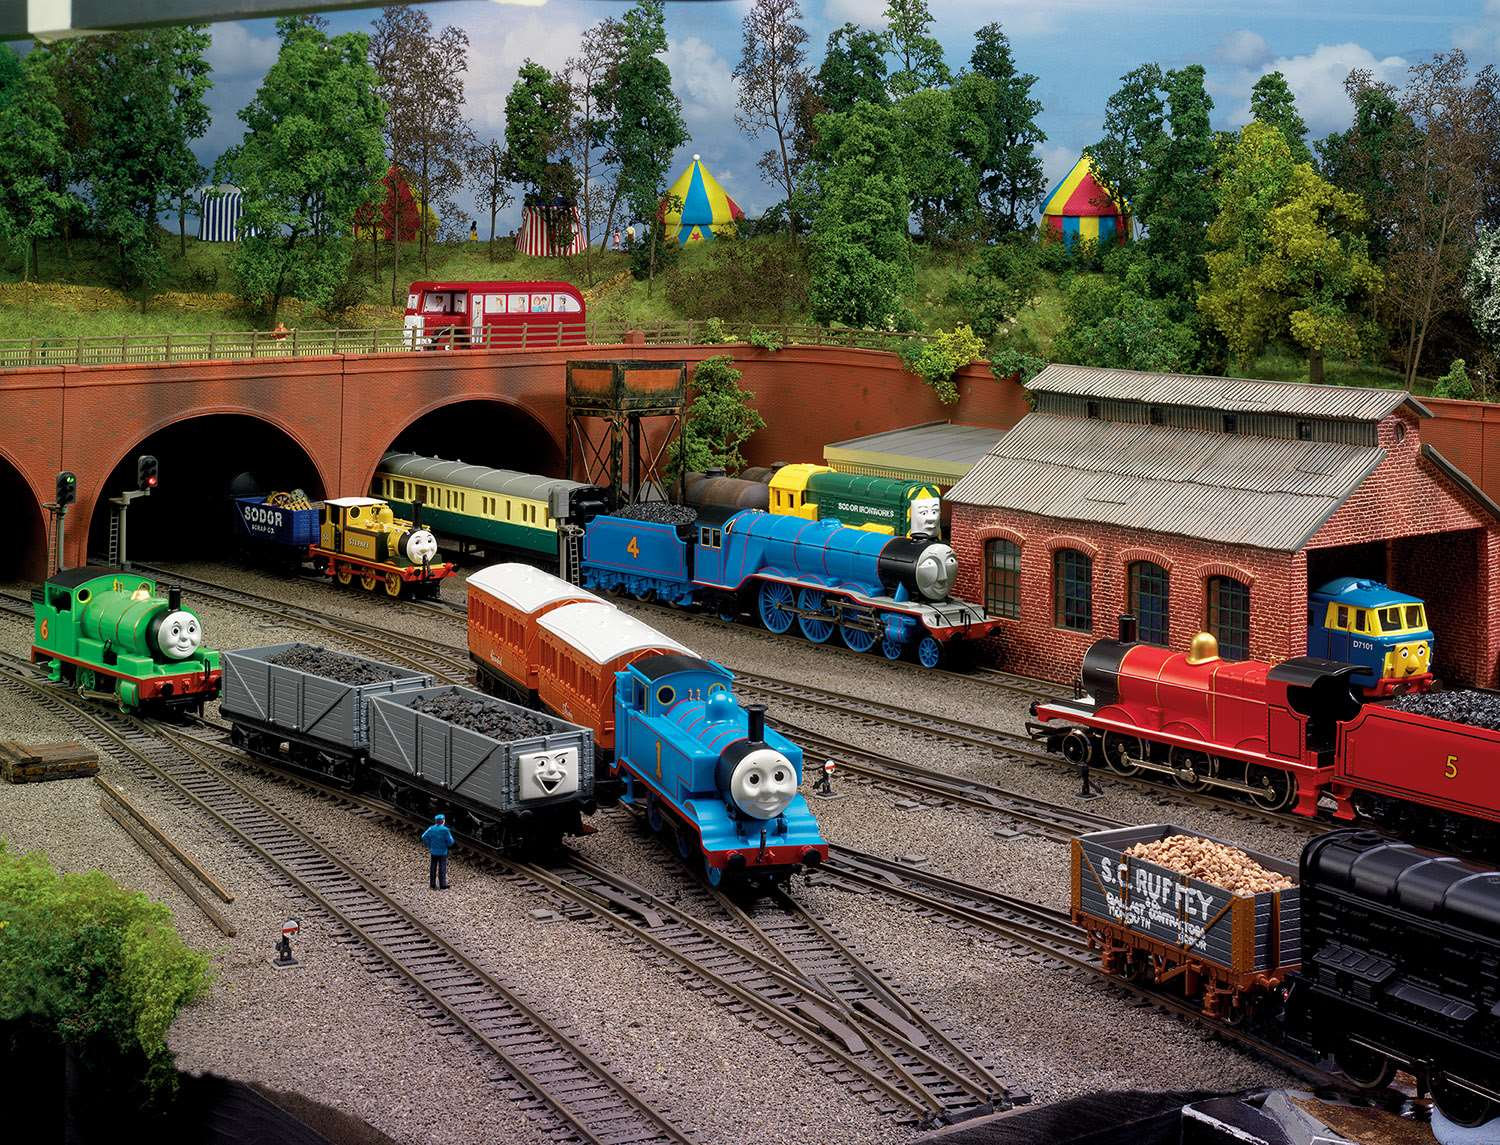 The Thomas and Friends model trains will be made by Hornby to celebrate the character's 70th anniversary.